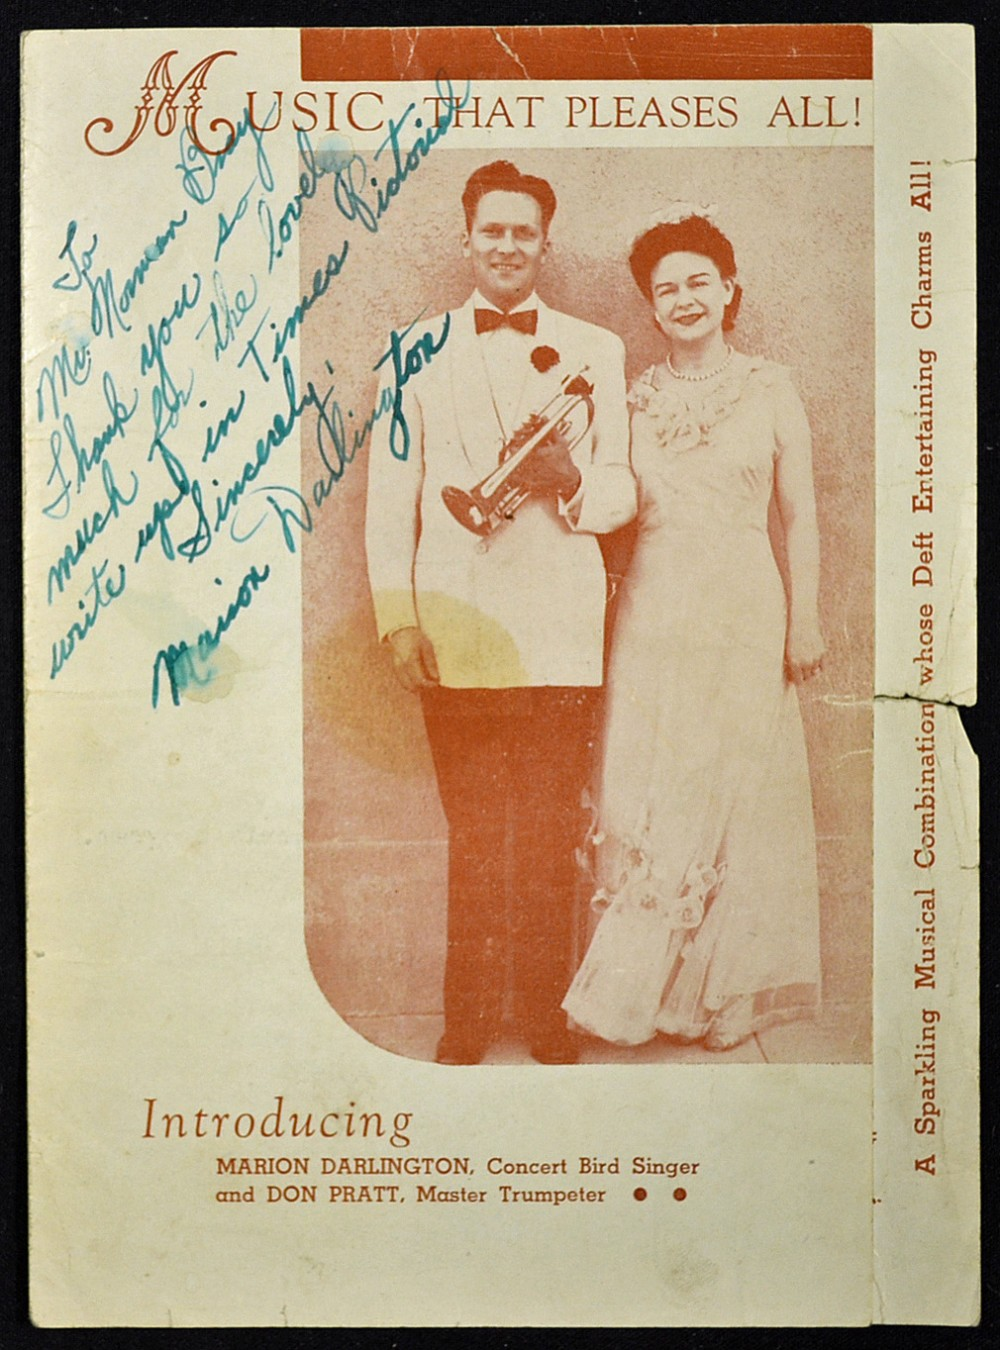 Lot 203A - Autograph Marion Darlington 1910-1991 Signed Music Programme signed in ink to the front cover, an